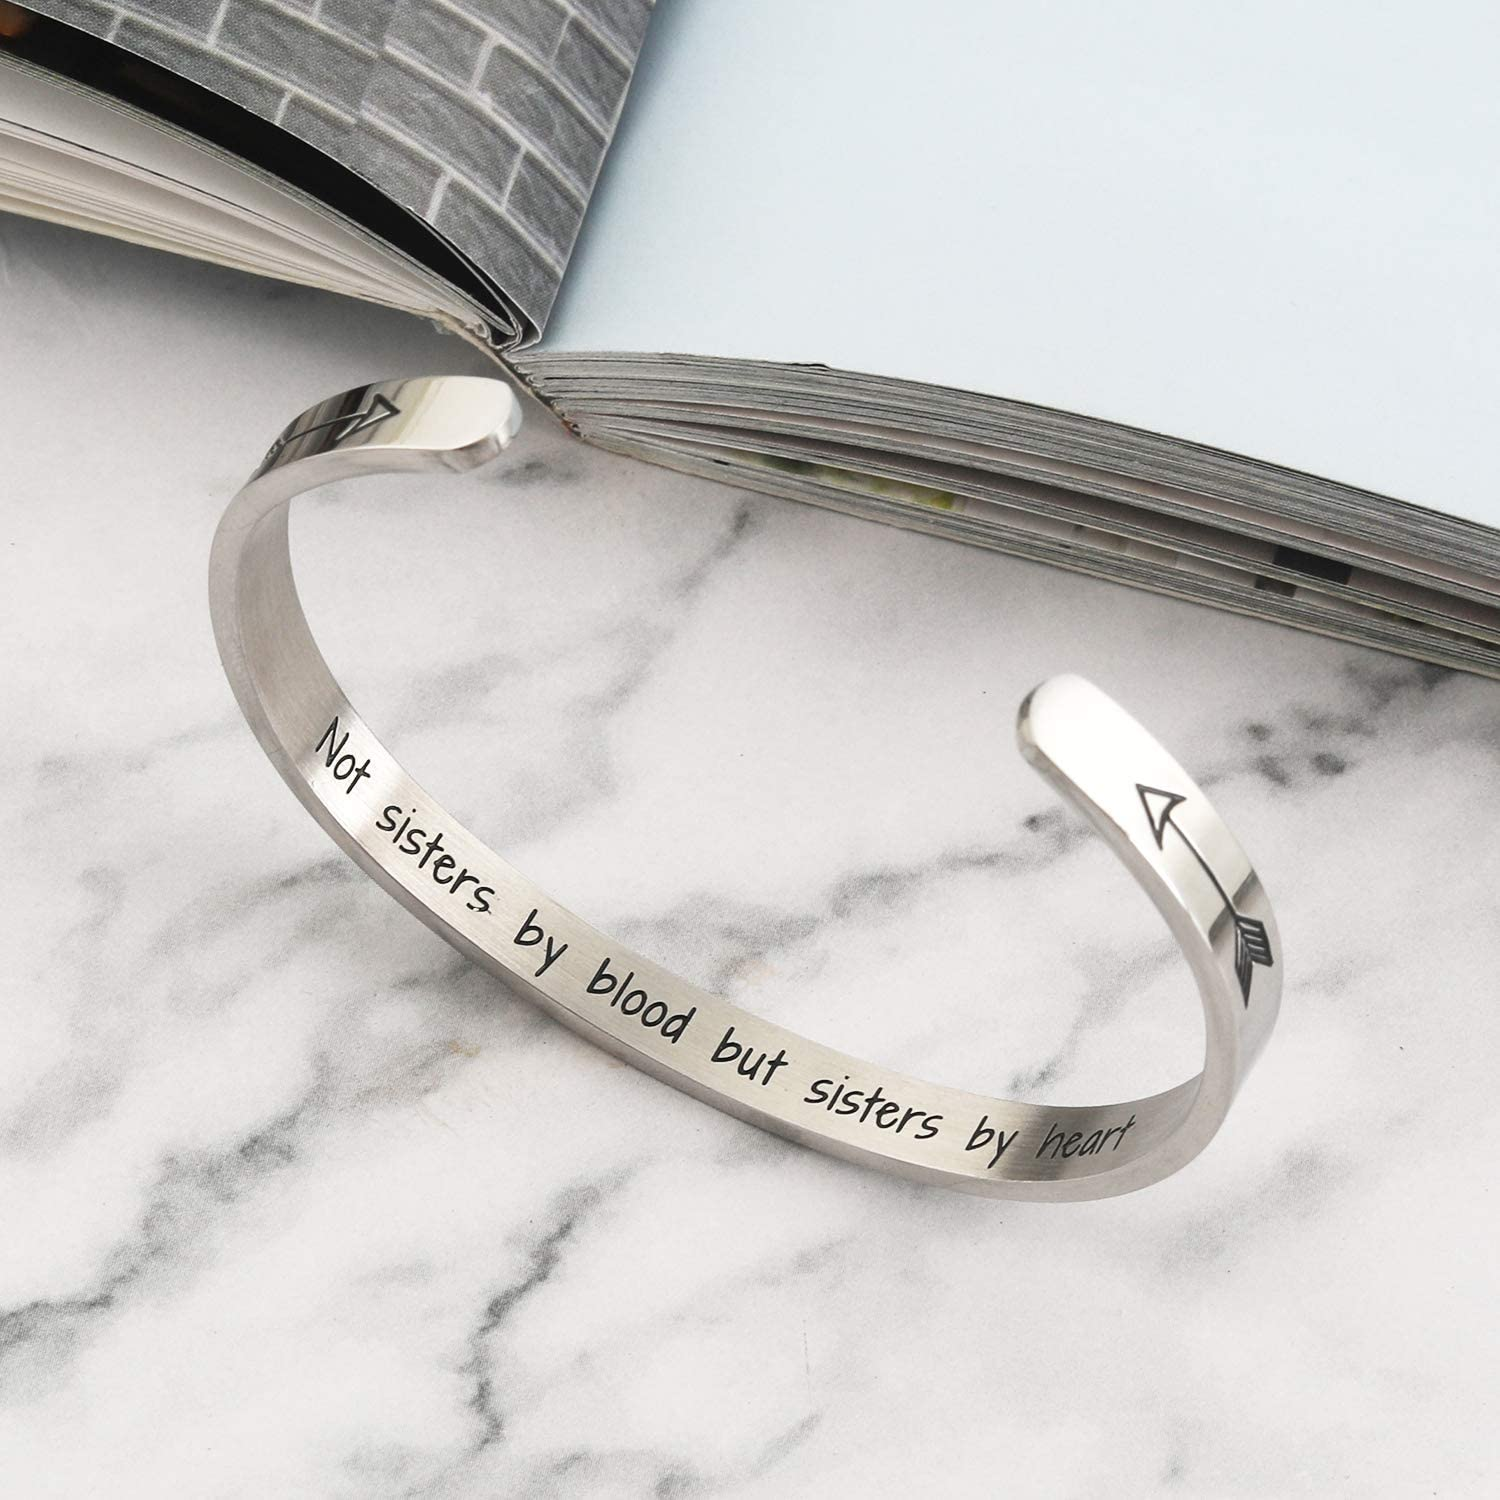 Sister Bracelet Sister Gift Not Sisters By Blood But Sisters By Heart Bracelet Sister Bracelet from Sister Friends Cuff Bangle for Sister Friends Christmas Birthday Gifts